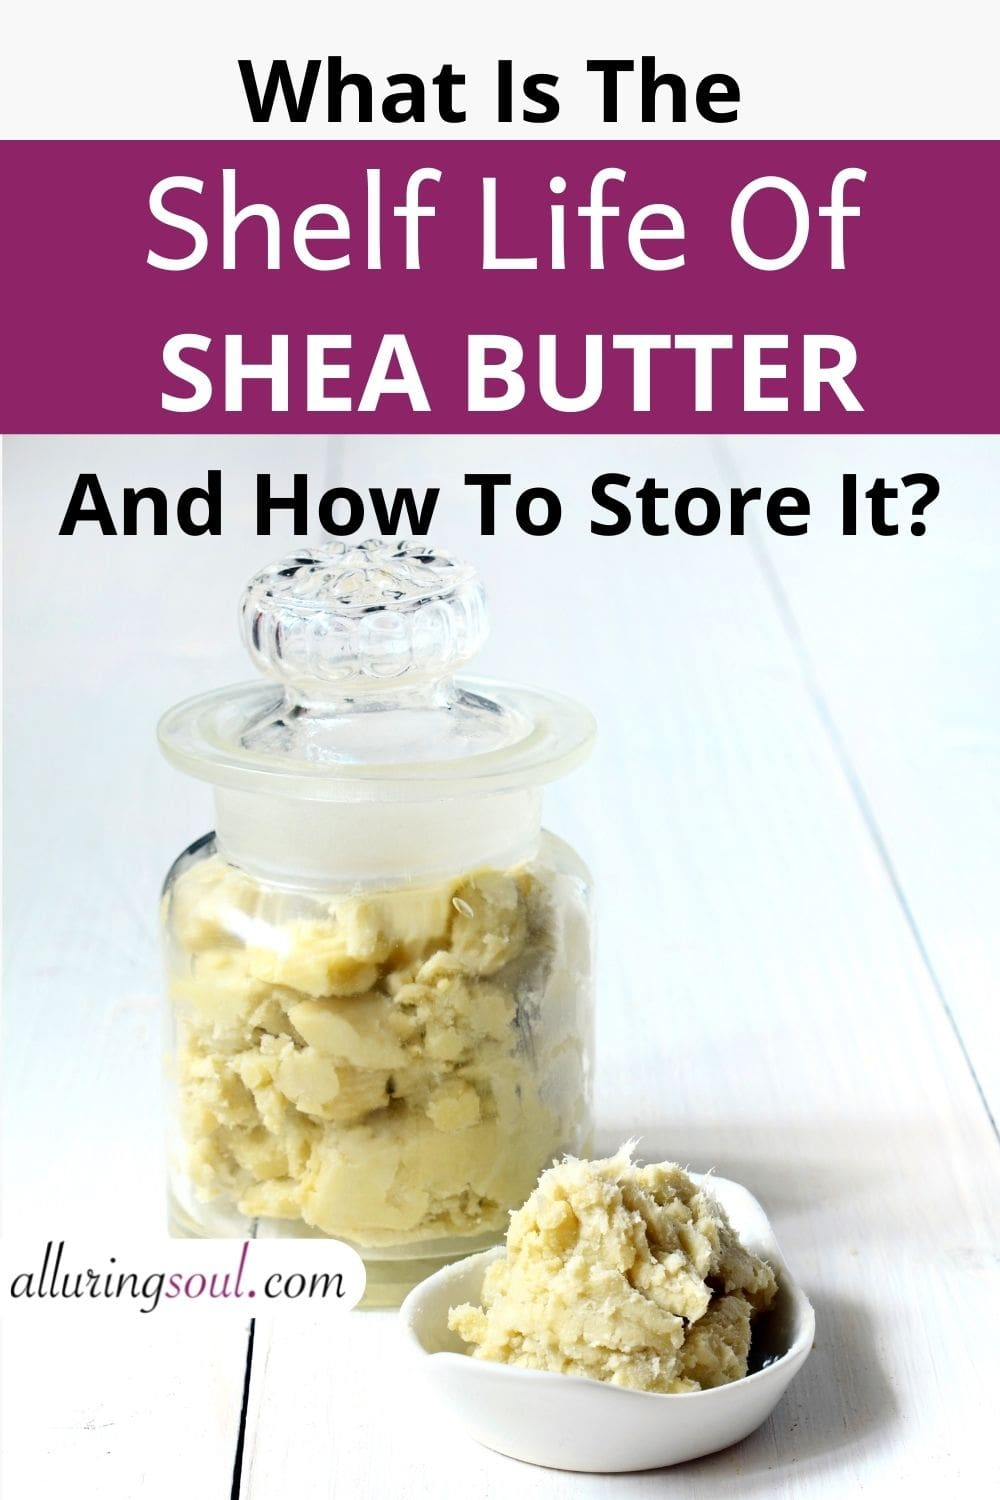 What is the shelf life of shea butter? (And how to store it?)